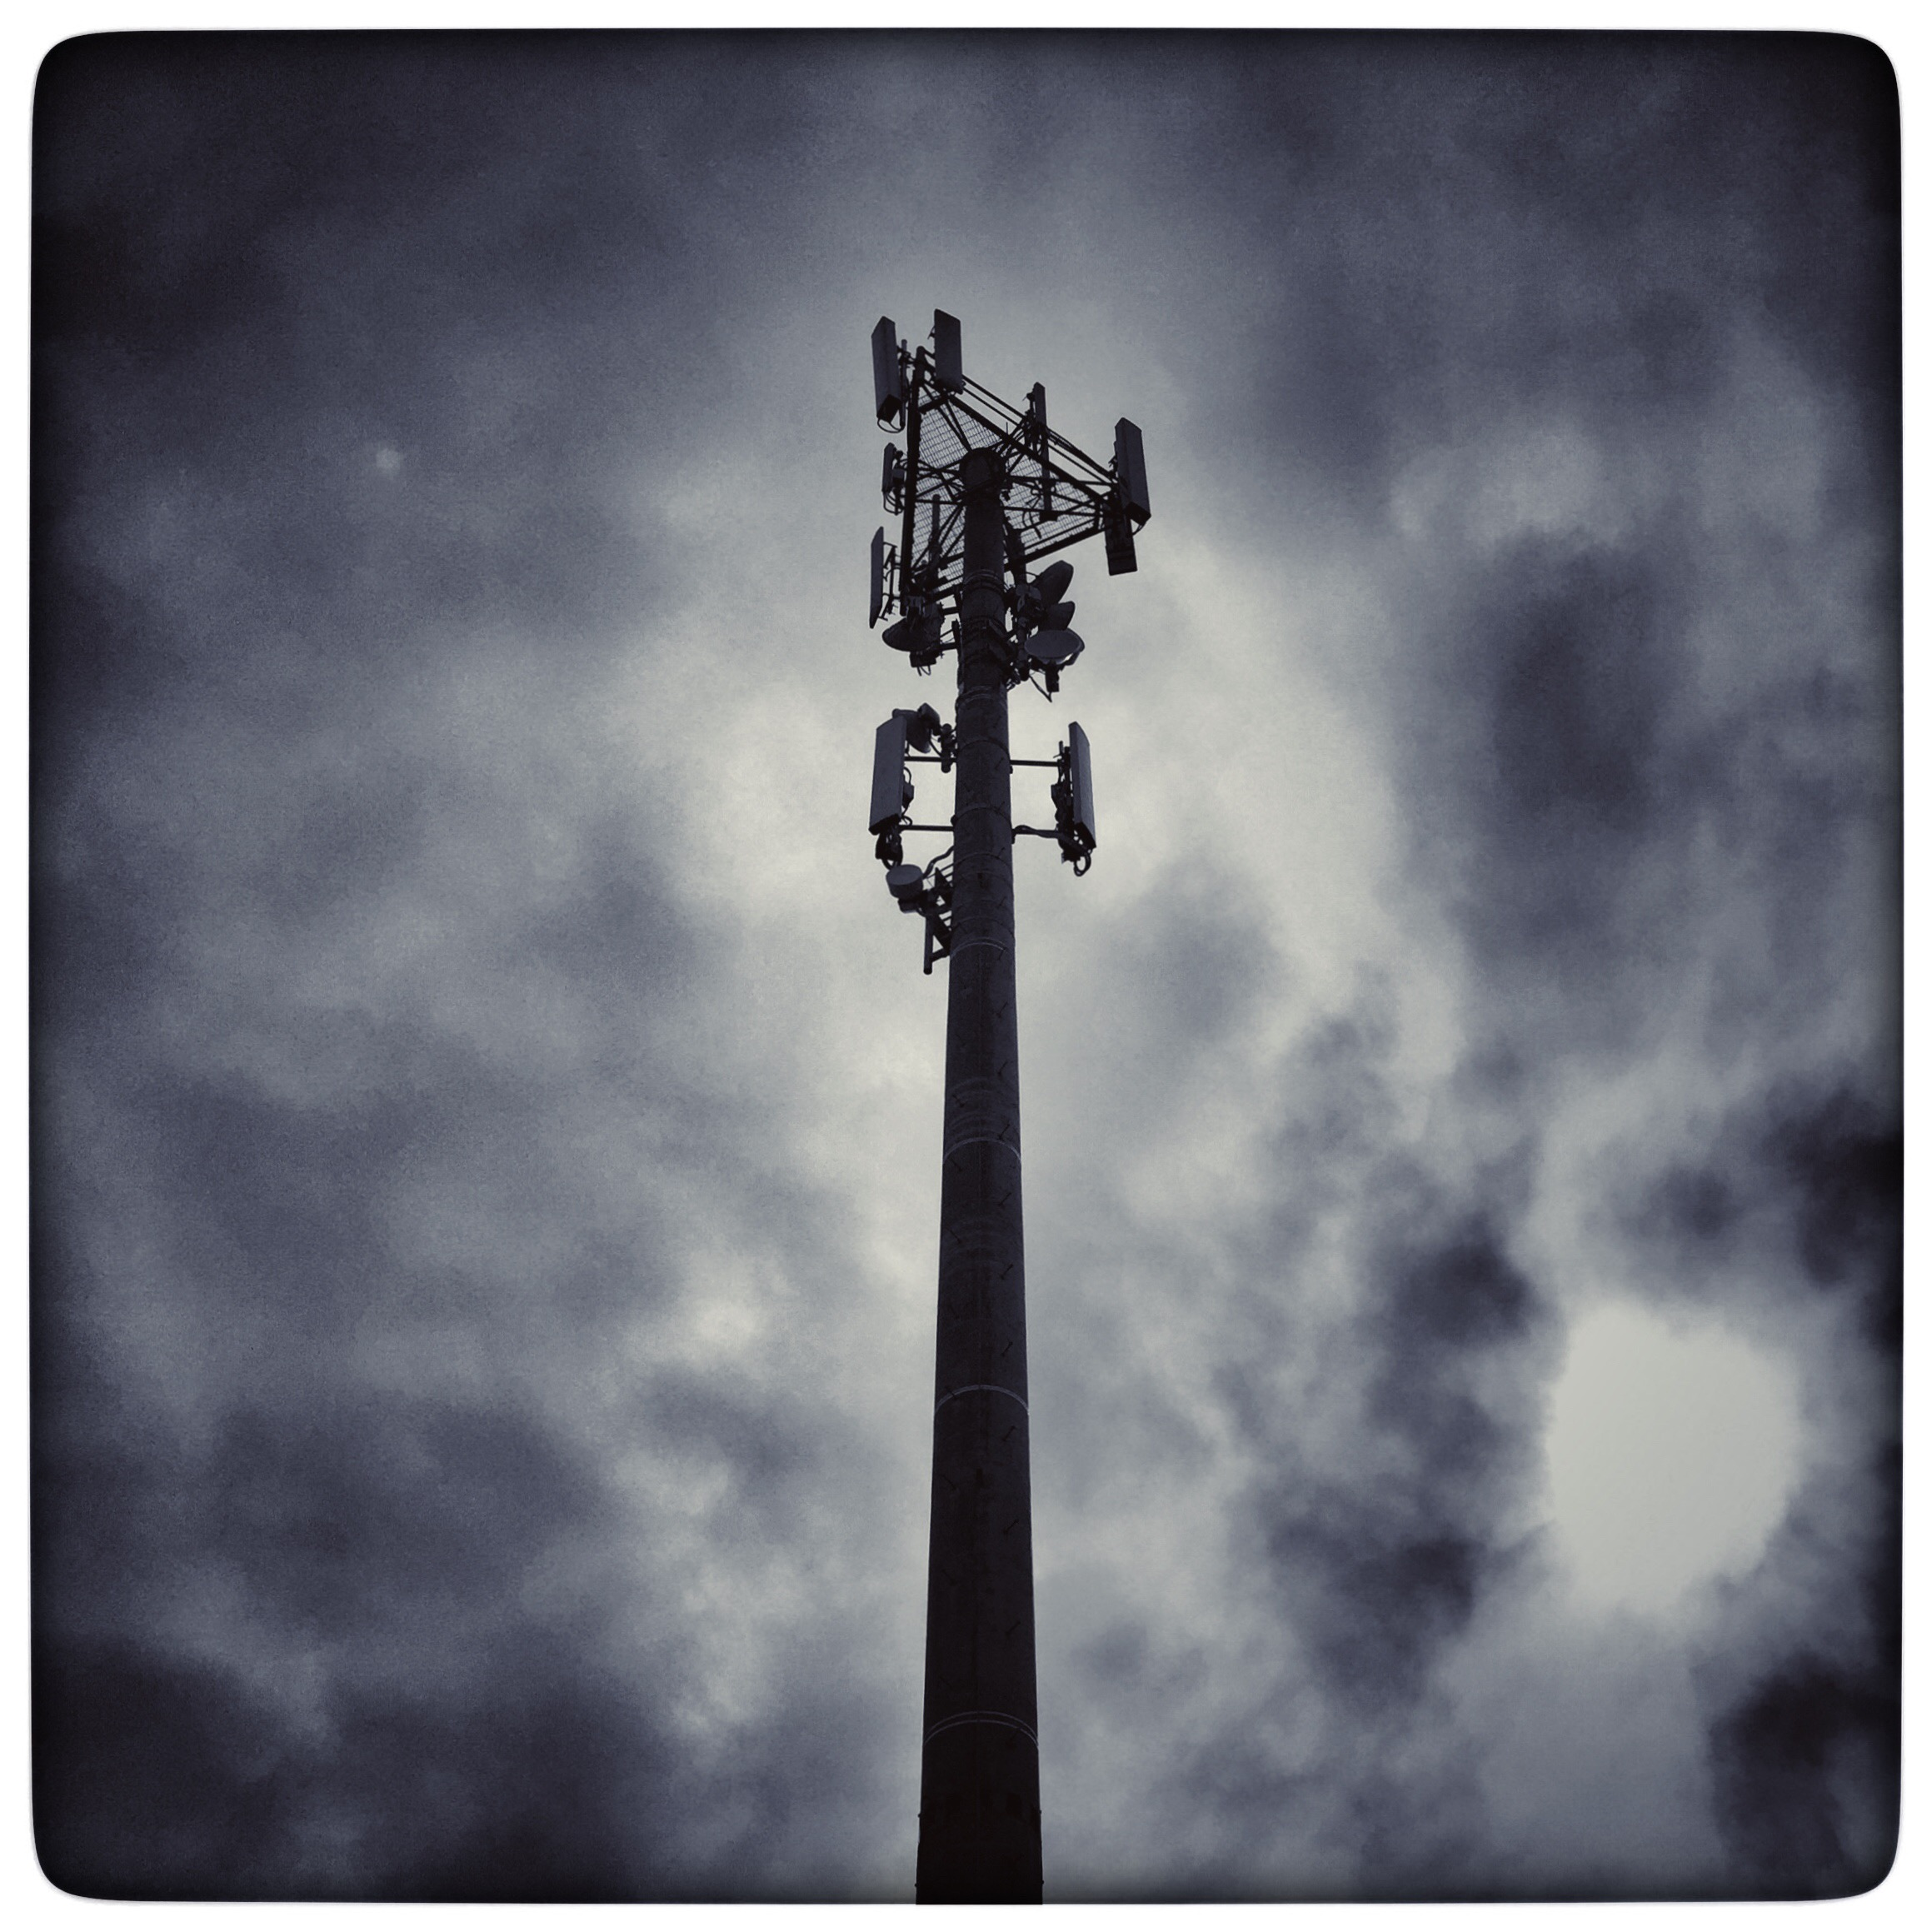 Day 1976. Towering Signal